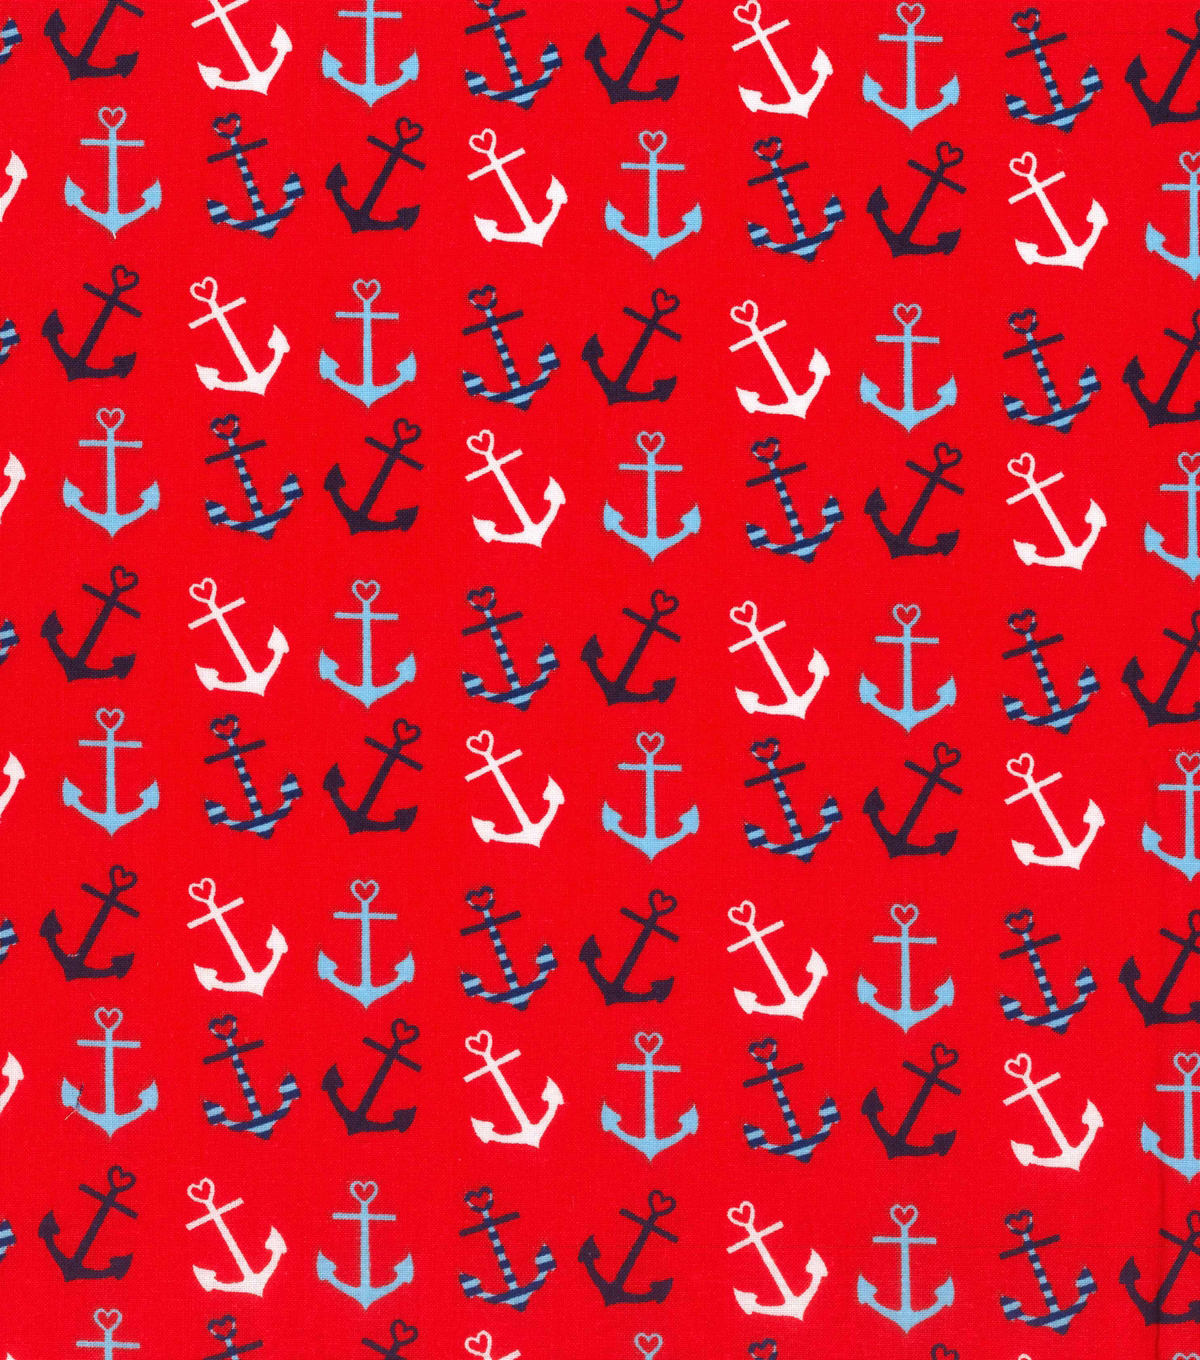 Novelty Cotton Fabric -Anchor Hearts